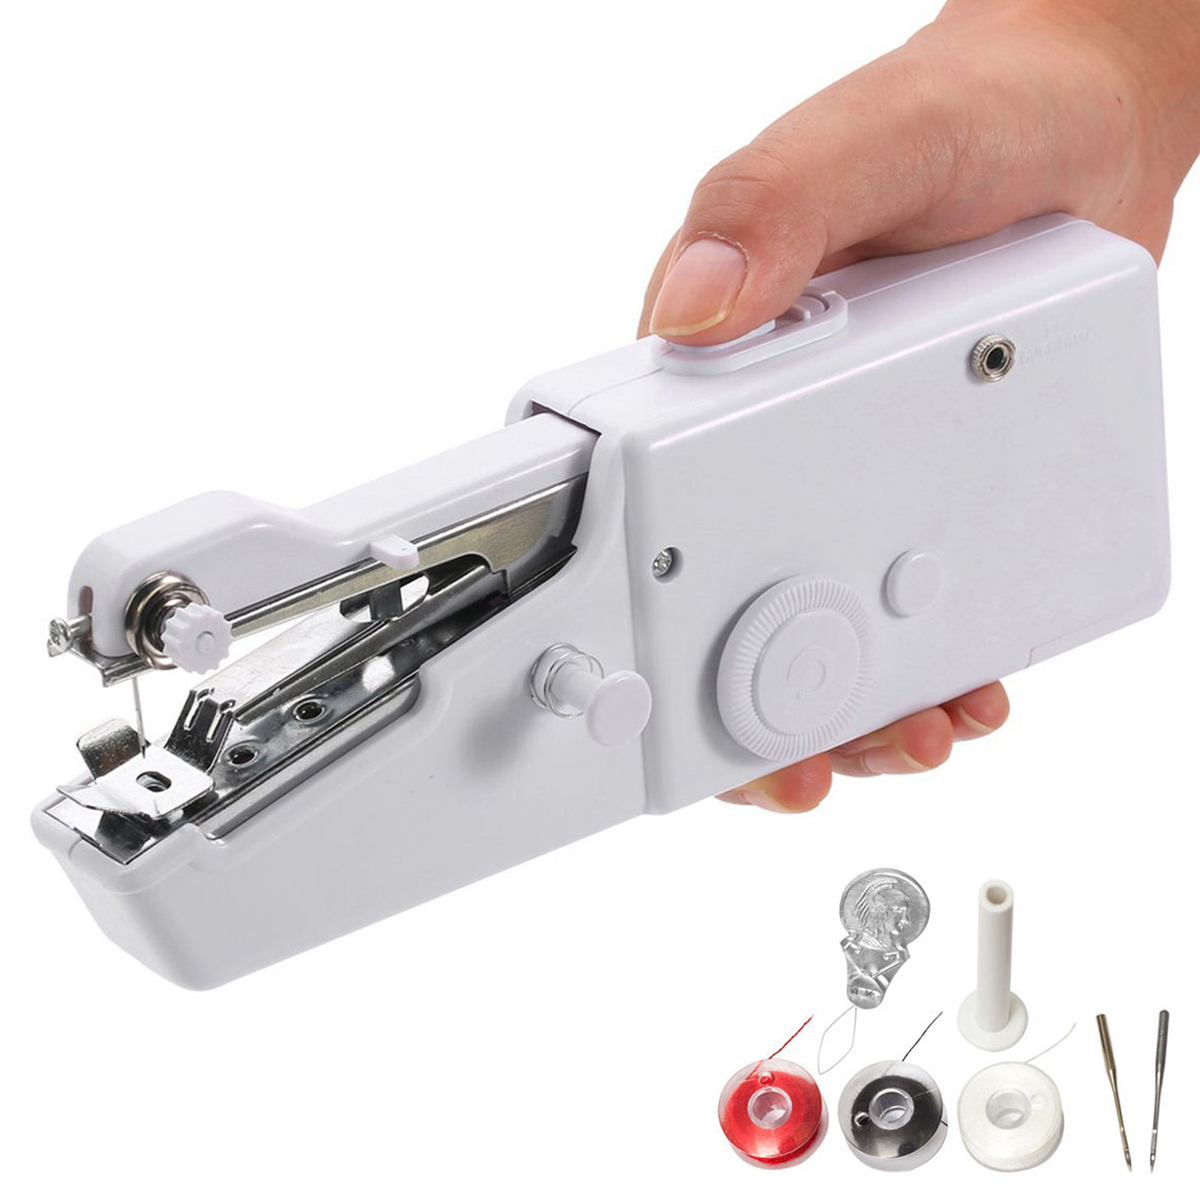 EEEKit Mini Electric Cordless Handheld Sewing Machine Professional Portable Quick Stitch Tool for Fabric, Clothing, or K